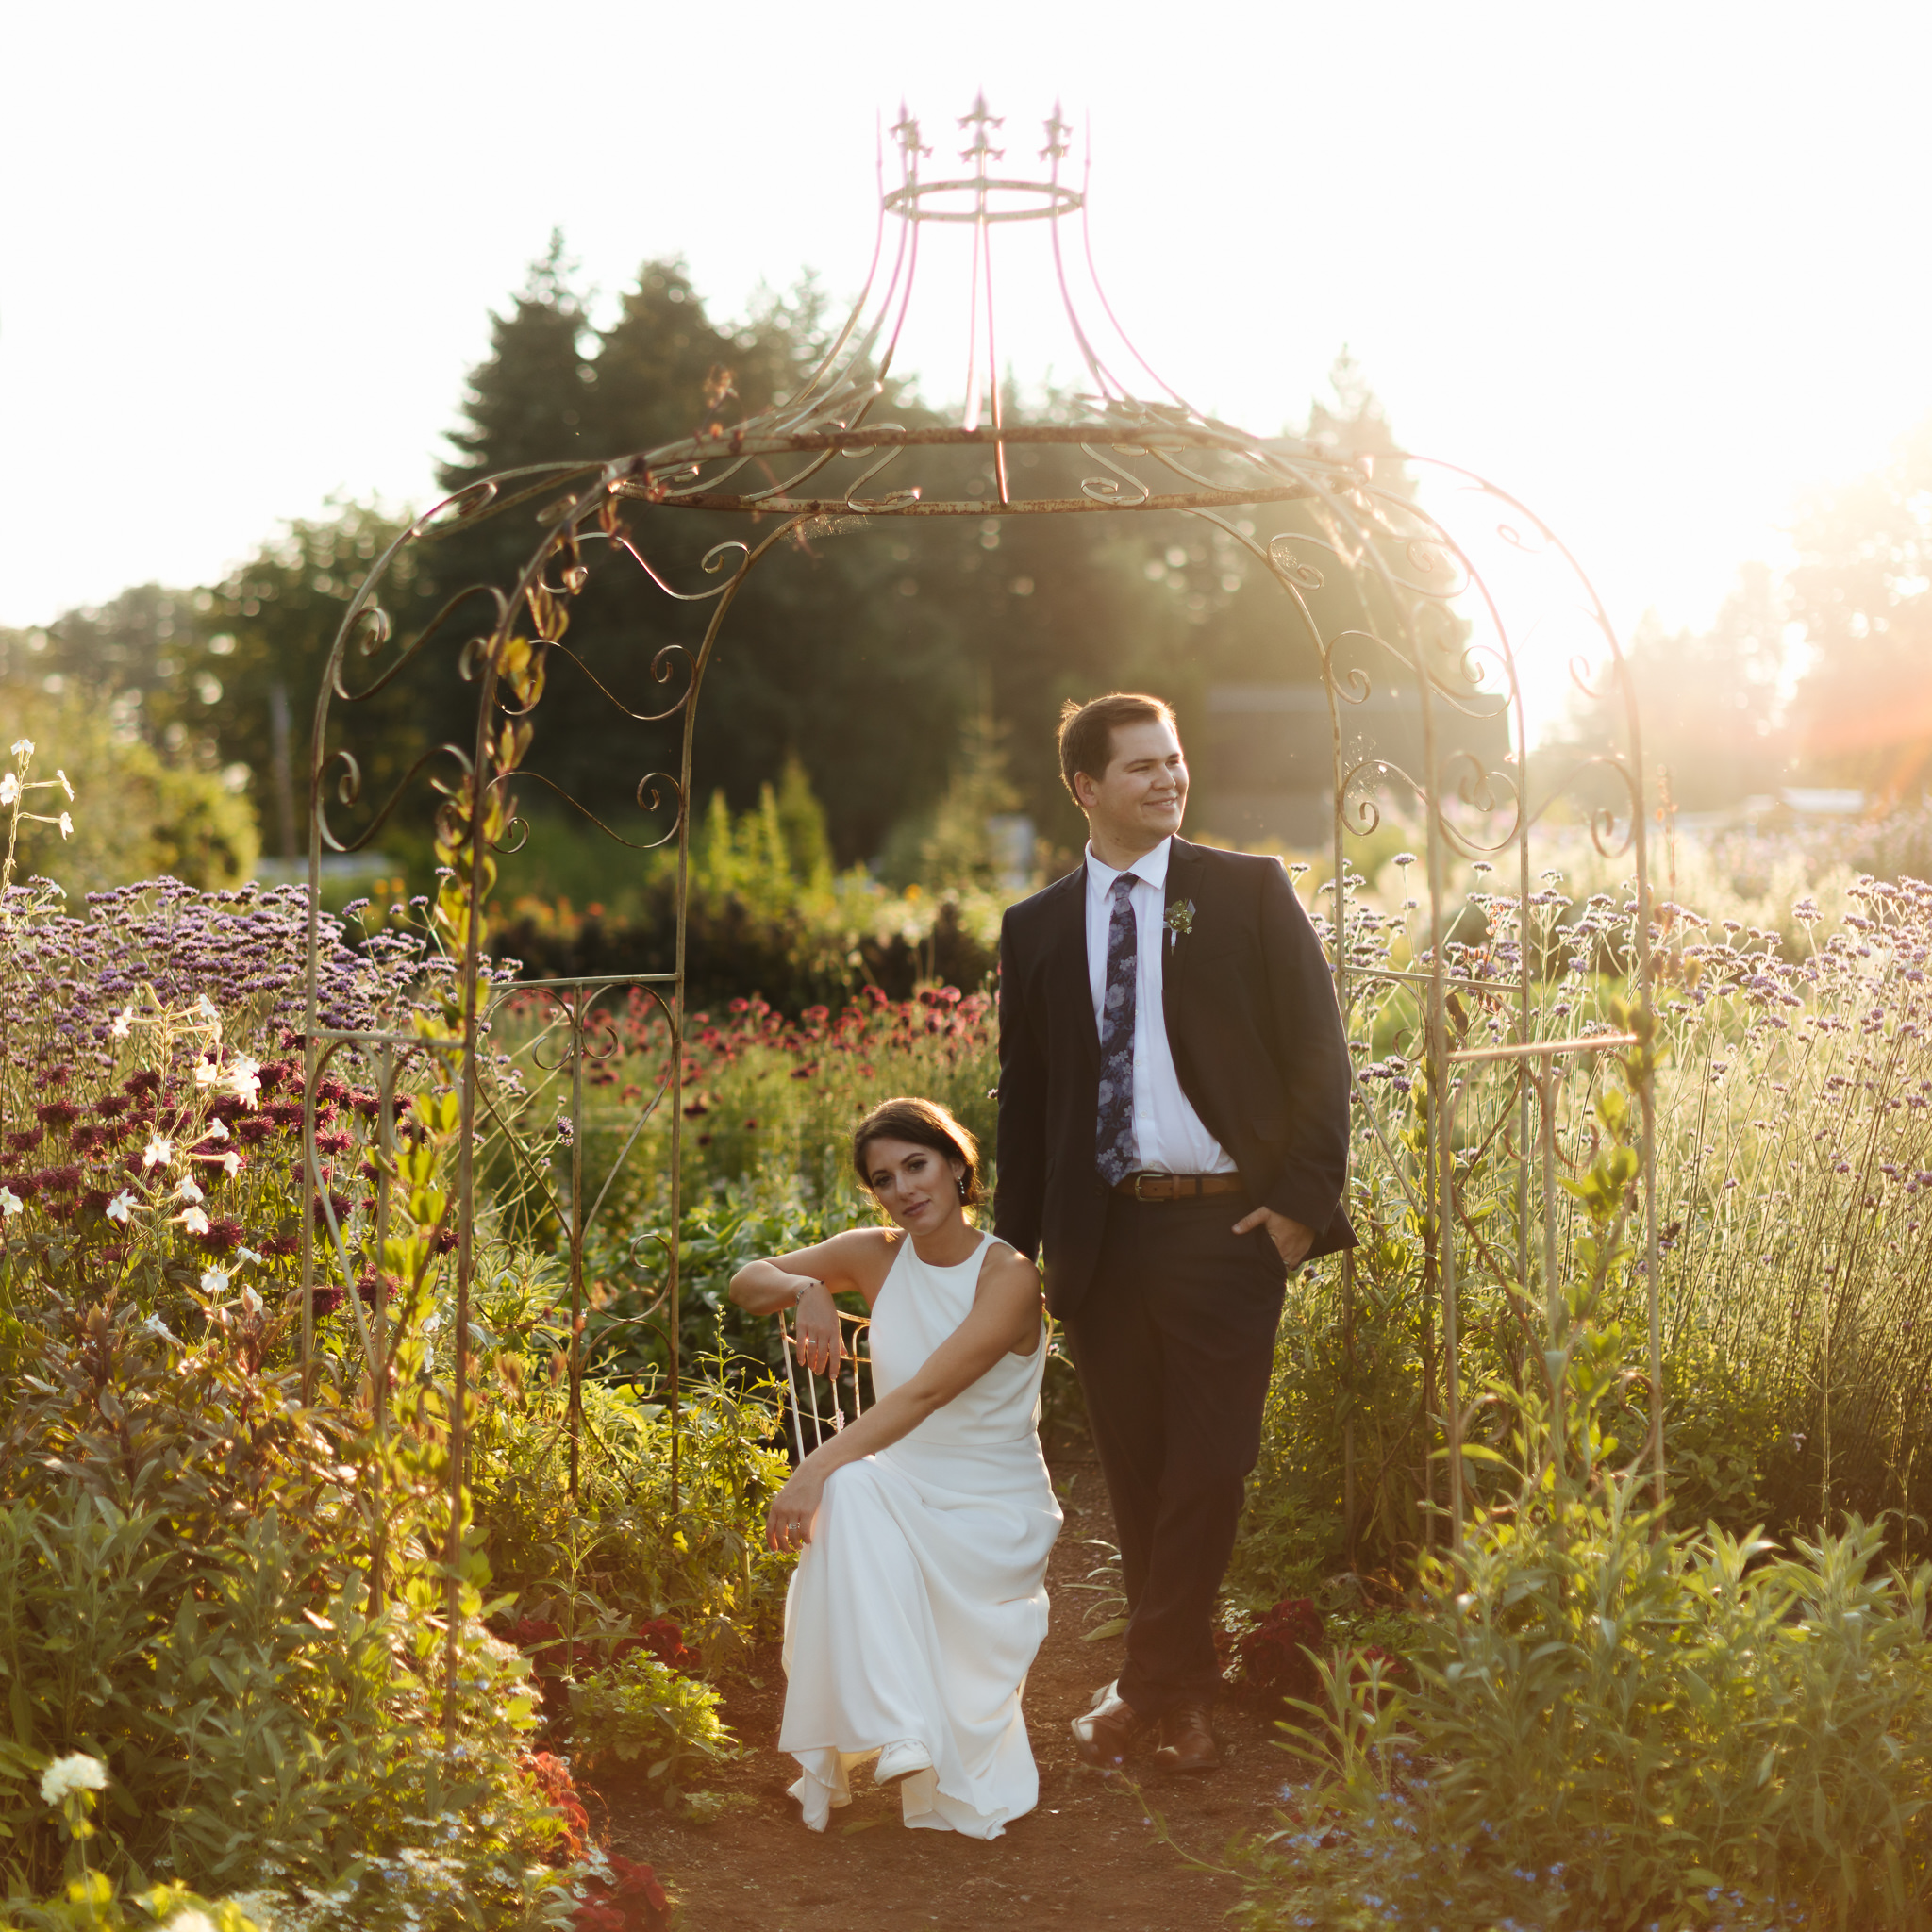 Photo credit: jtobiason Photography | Nick and shelby at sunset in the garden on their wedding day at events at Pine creek Nursery